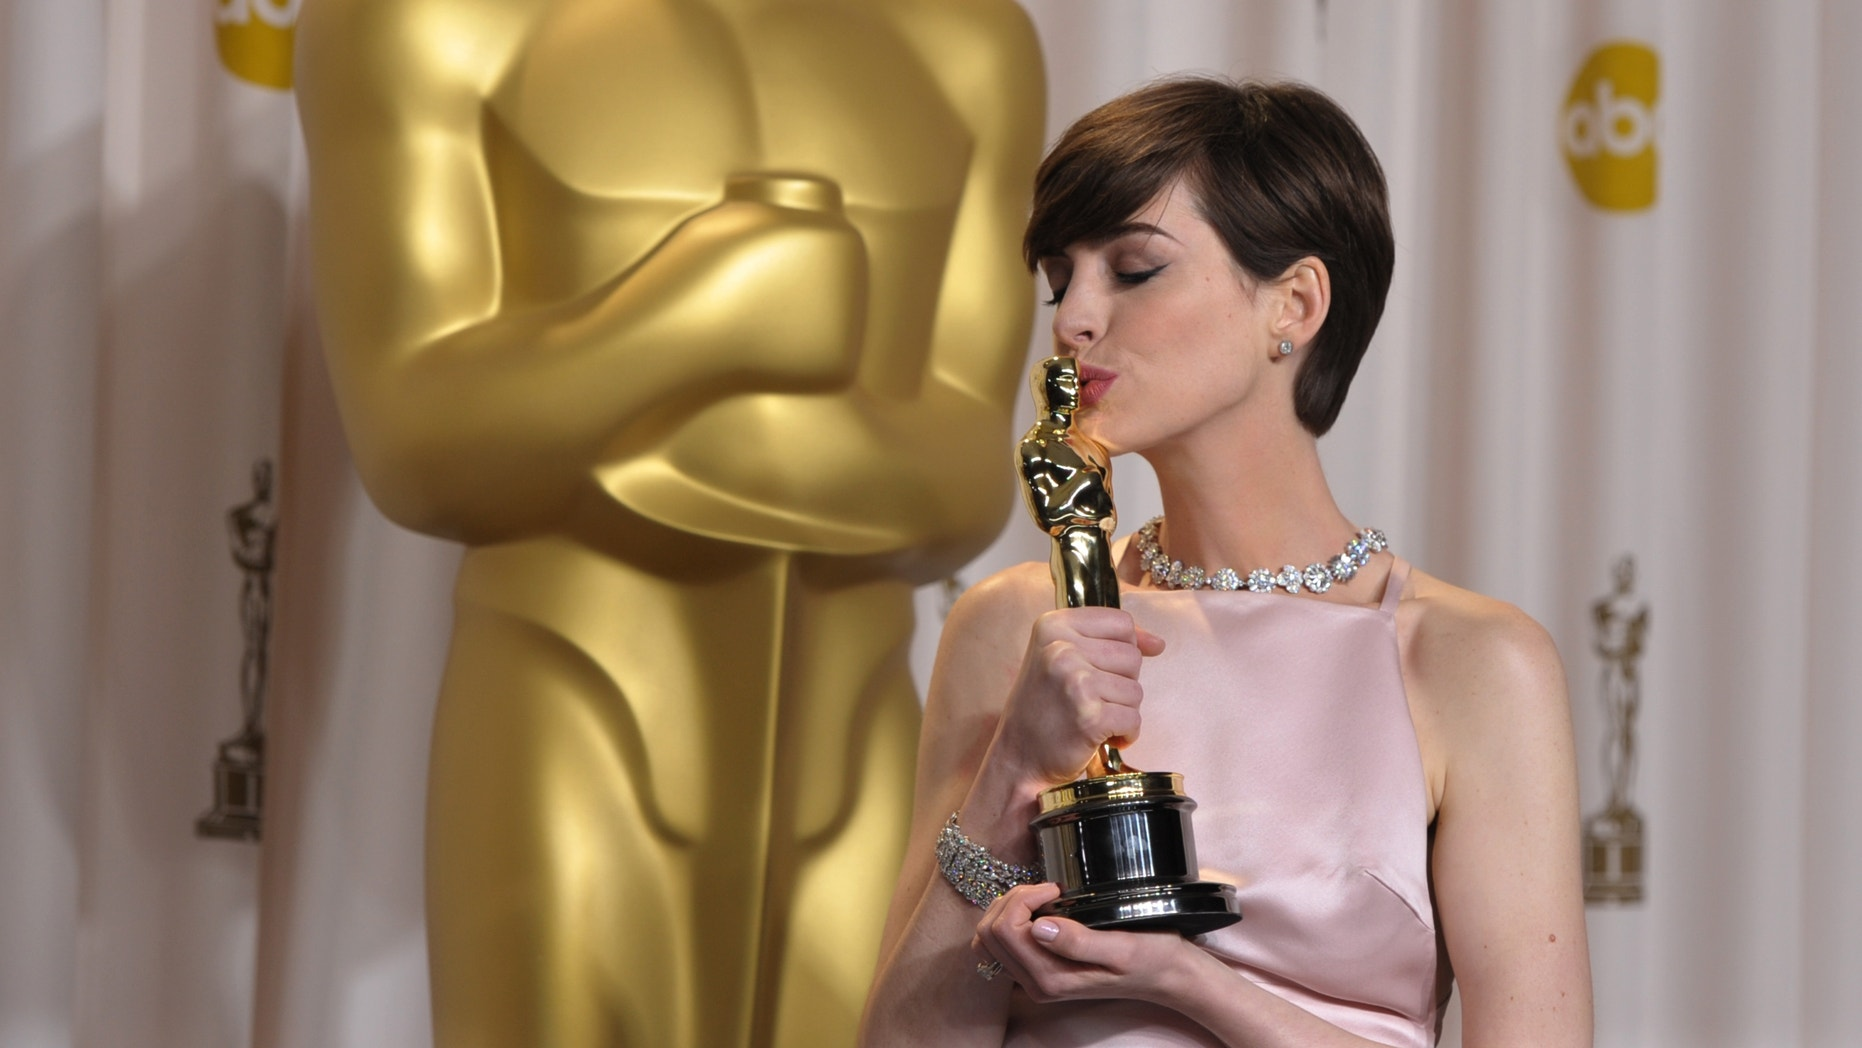 ** EMBARGOED AT THE REQUEST OF THE ACADEMY OF MOTION PICTURE ARTS & SCIENCES FOR USE UPON CONCLUSION OF THE ACADEMY AWARDS TELECAST ** xx  at the Oscars at the Dolby Theatre on Sunday Feb. 24, 2013, in Los Angeles. (Photo by John Shearer/Invision/AP)